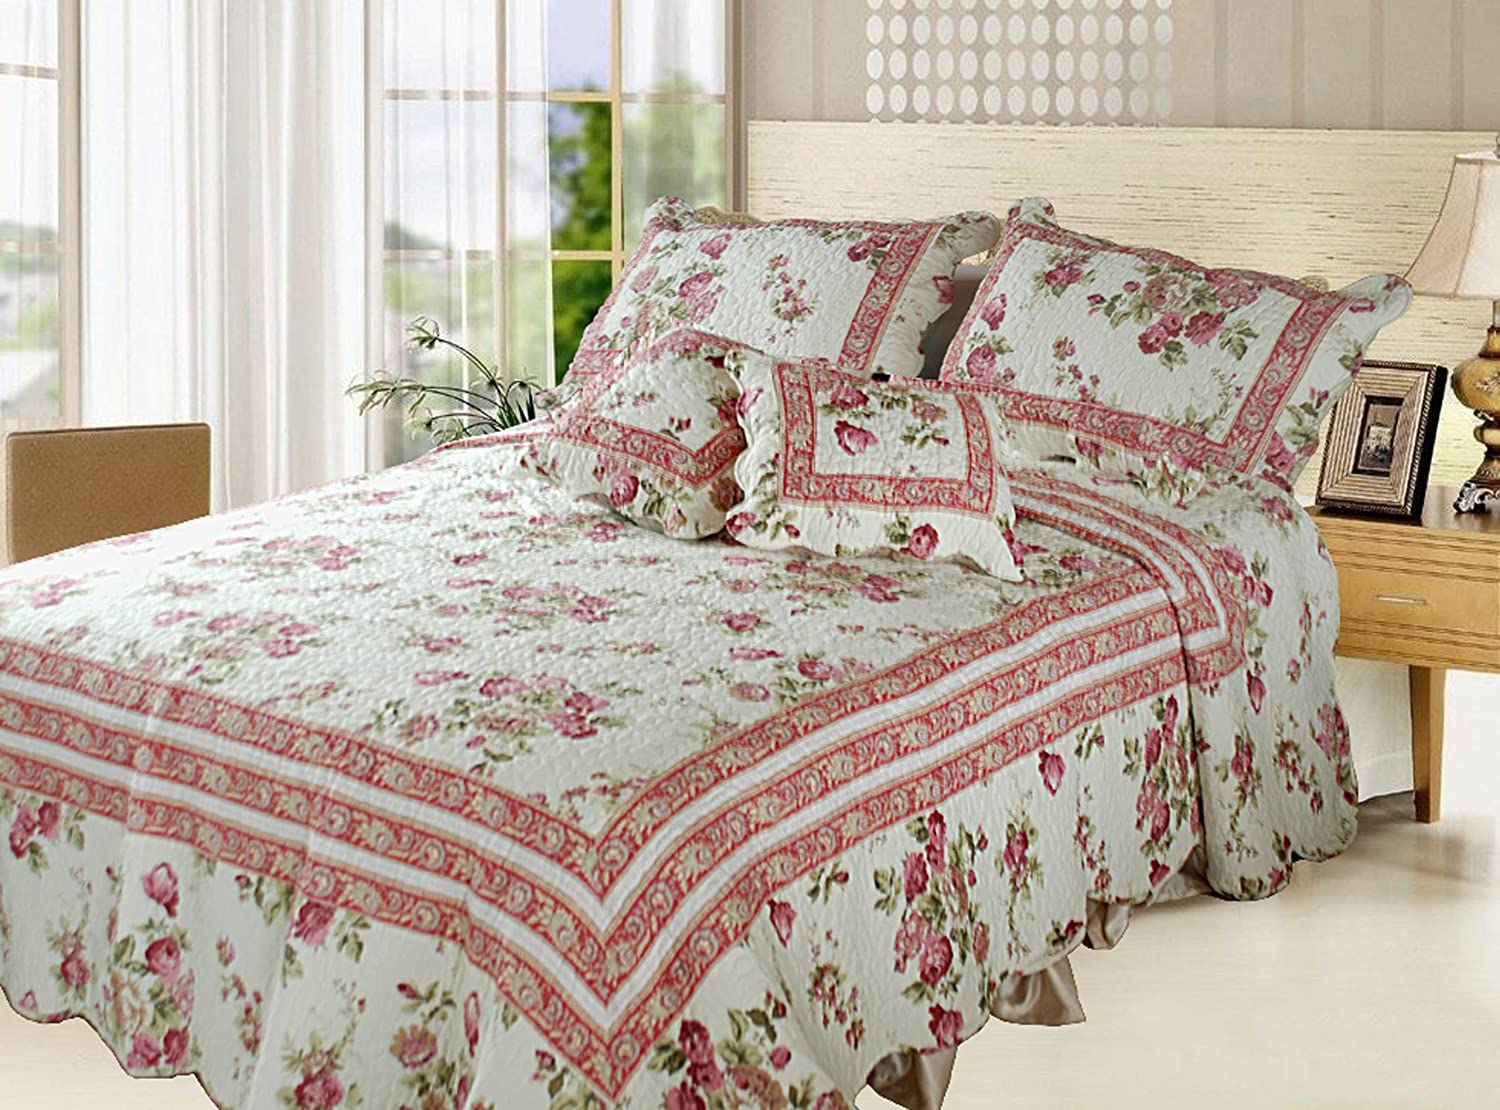 Amazon.com: DaDa Bedding DXJ103136 French Country Cotton 5 Piece Quilt Set,  Queen, Floral: Home U0026 Kitchen